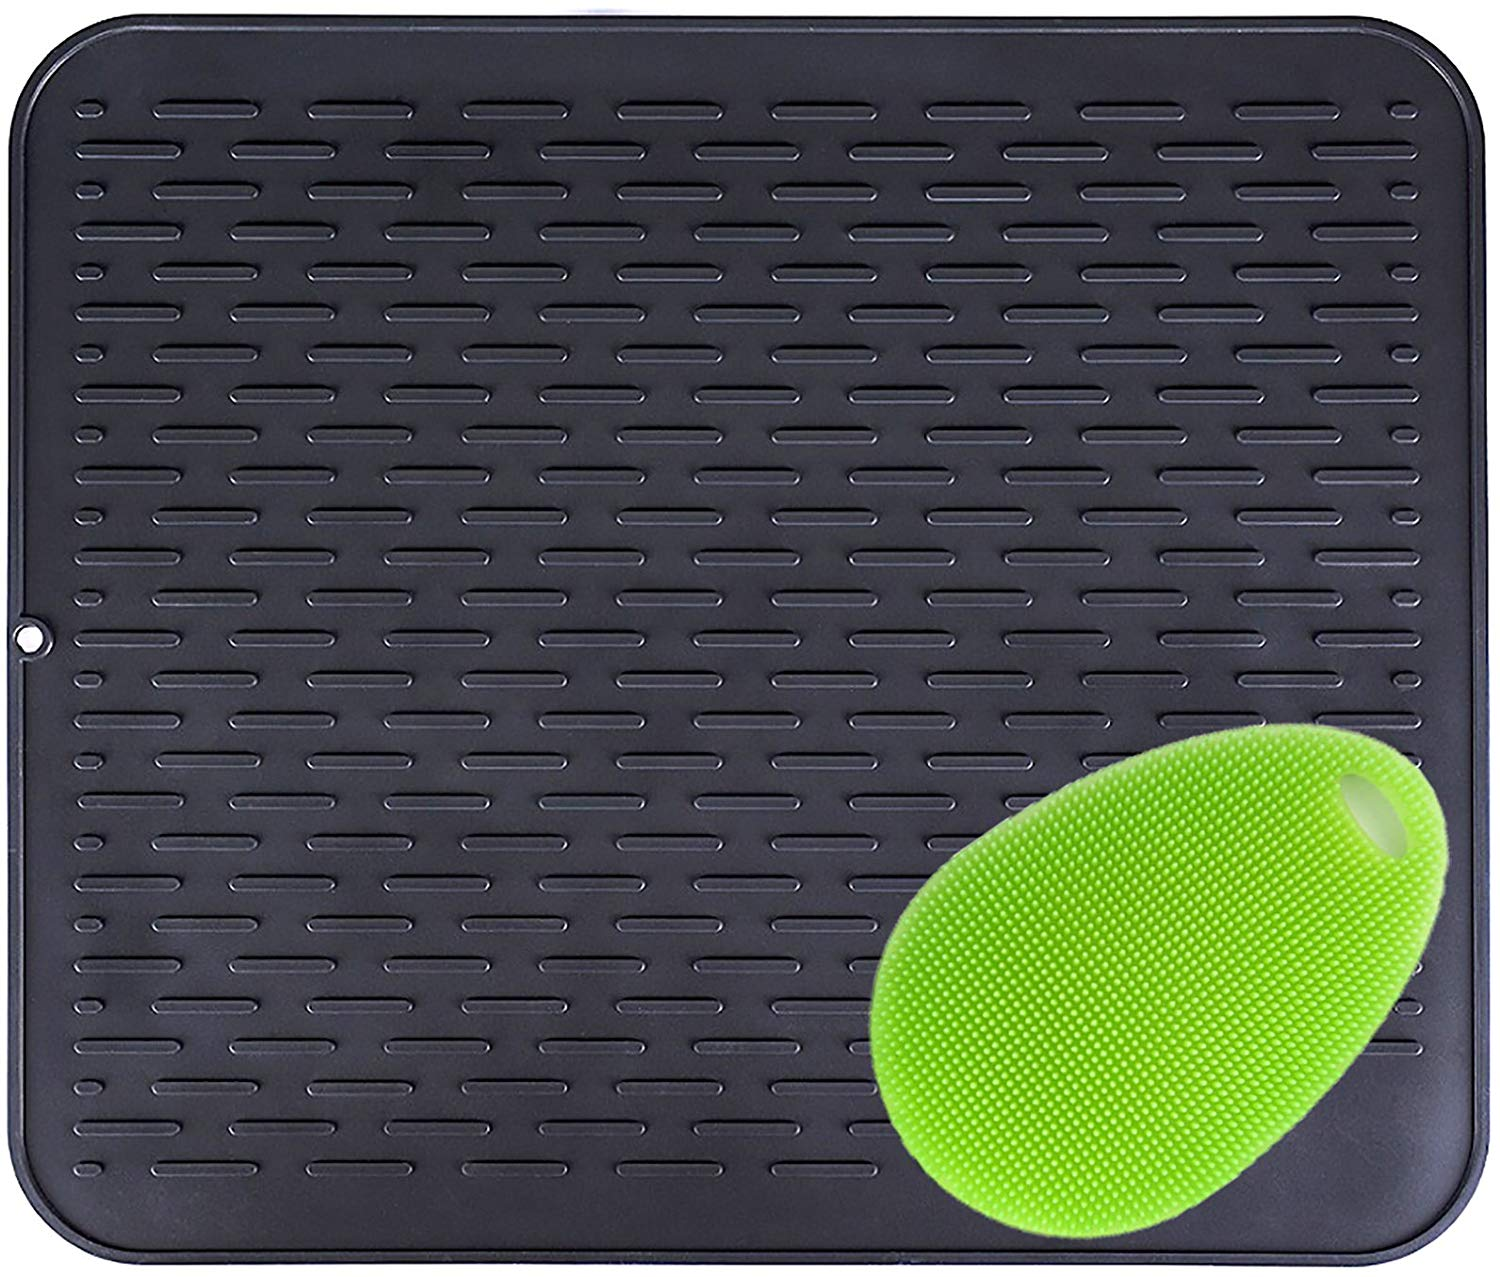 Kitchen Silicone Dish Drying Mat Counter Mat Heat Insulation, Draining Boards Silicone Trivet with a silicone clean Scrubber, Non-Slip(17.8x15in, black)